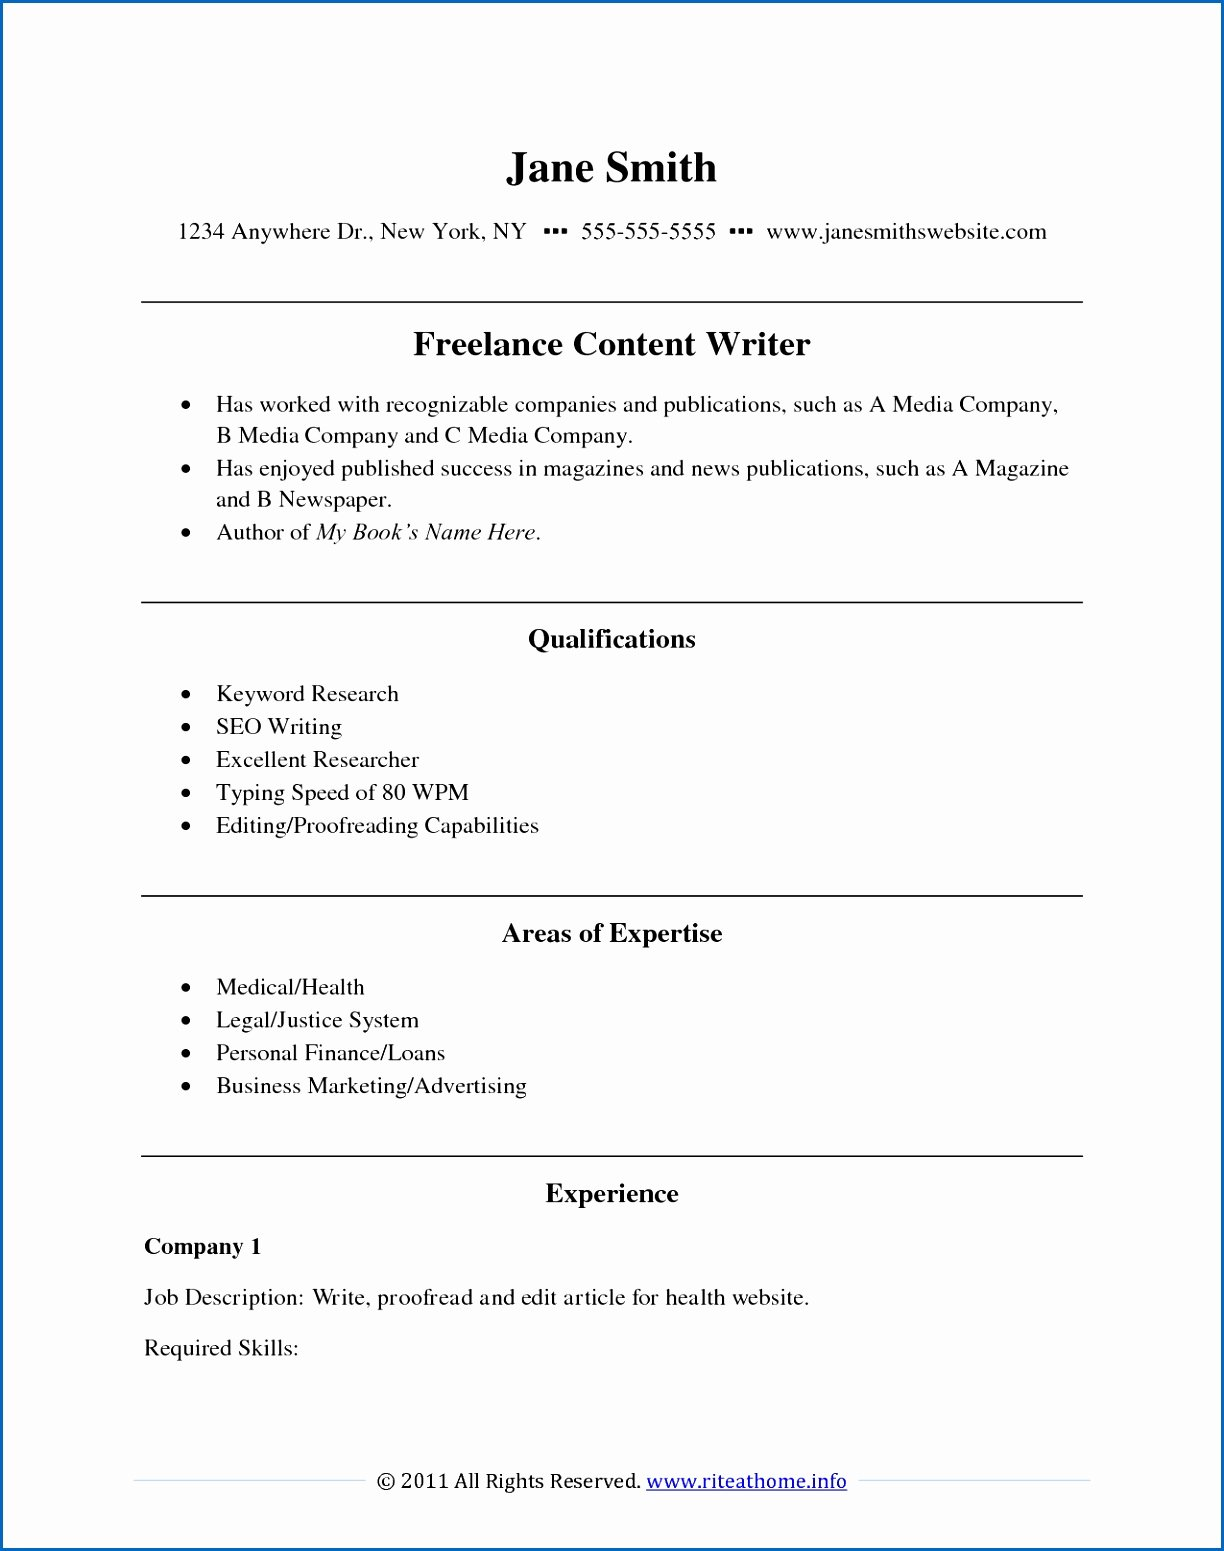 Freelance Writer Resume Template Luxury 9 Freelance Writing Resume Samples